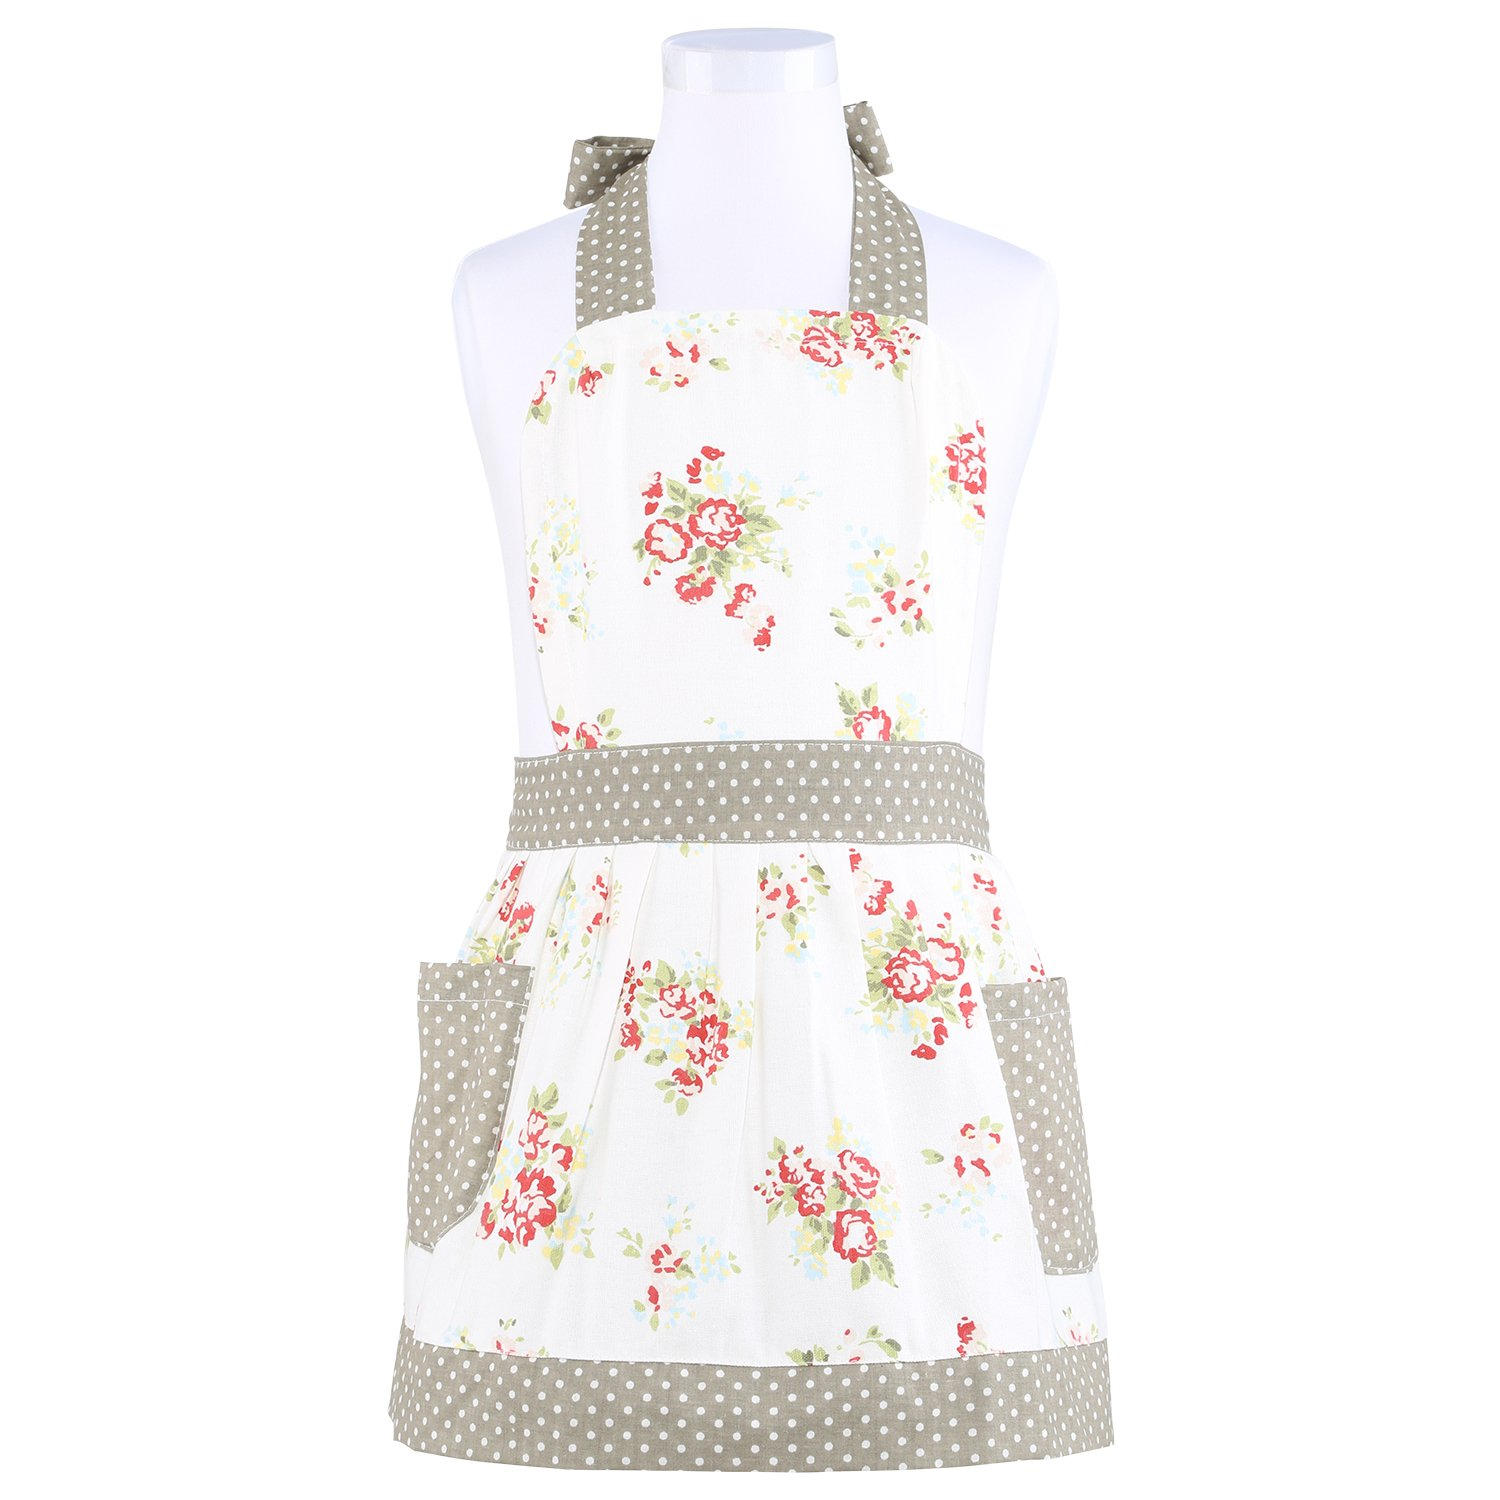 Neoviva Cotton Canvas Garden Child Apron with Pockets, Style Diana, Floral Nitong Roses